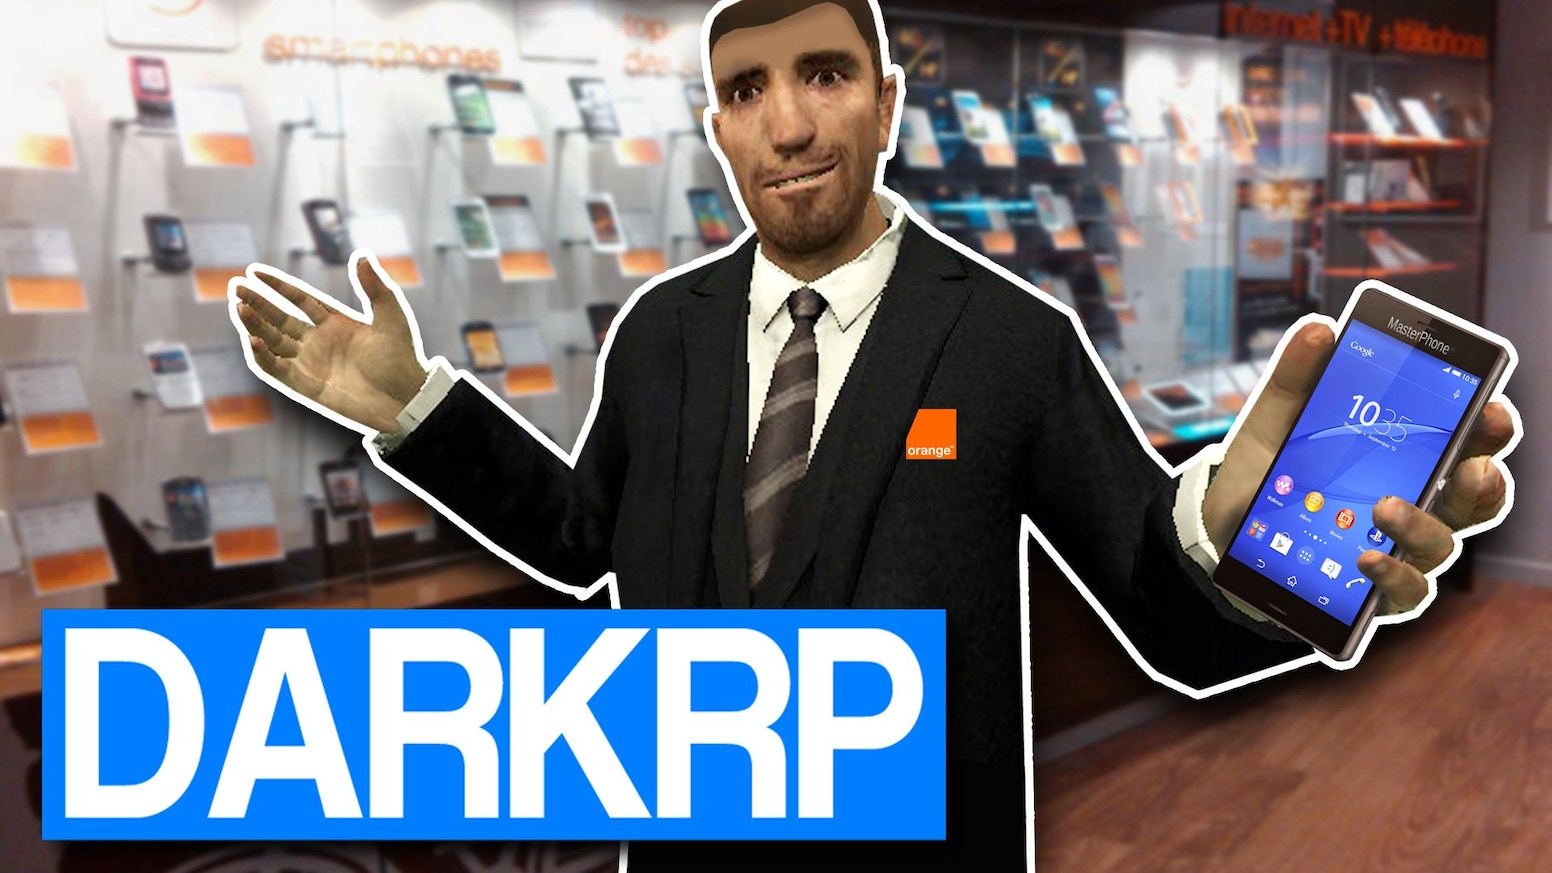 A Real Canadian Garry's Mod DarkRP Server by Joey Drysdale